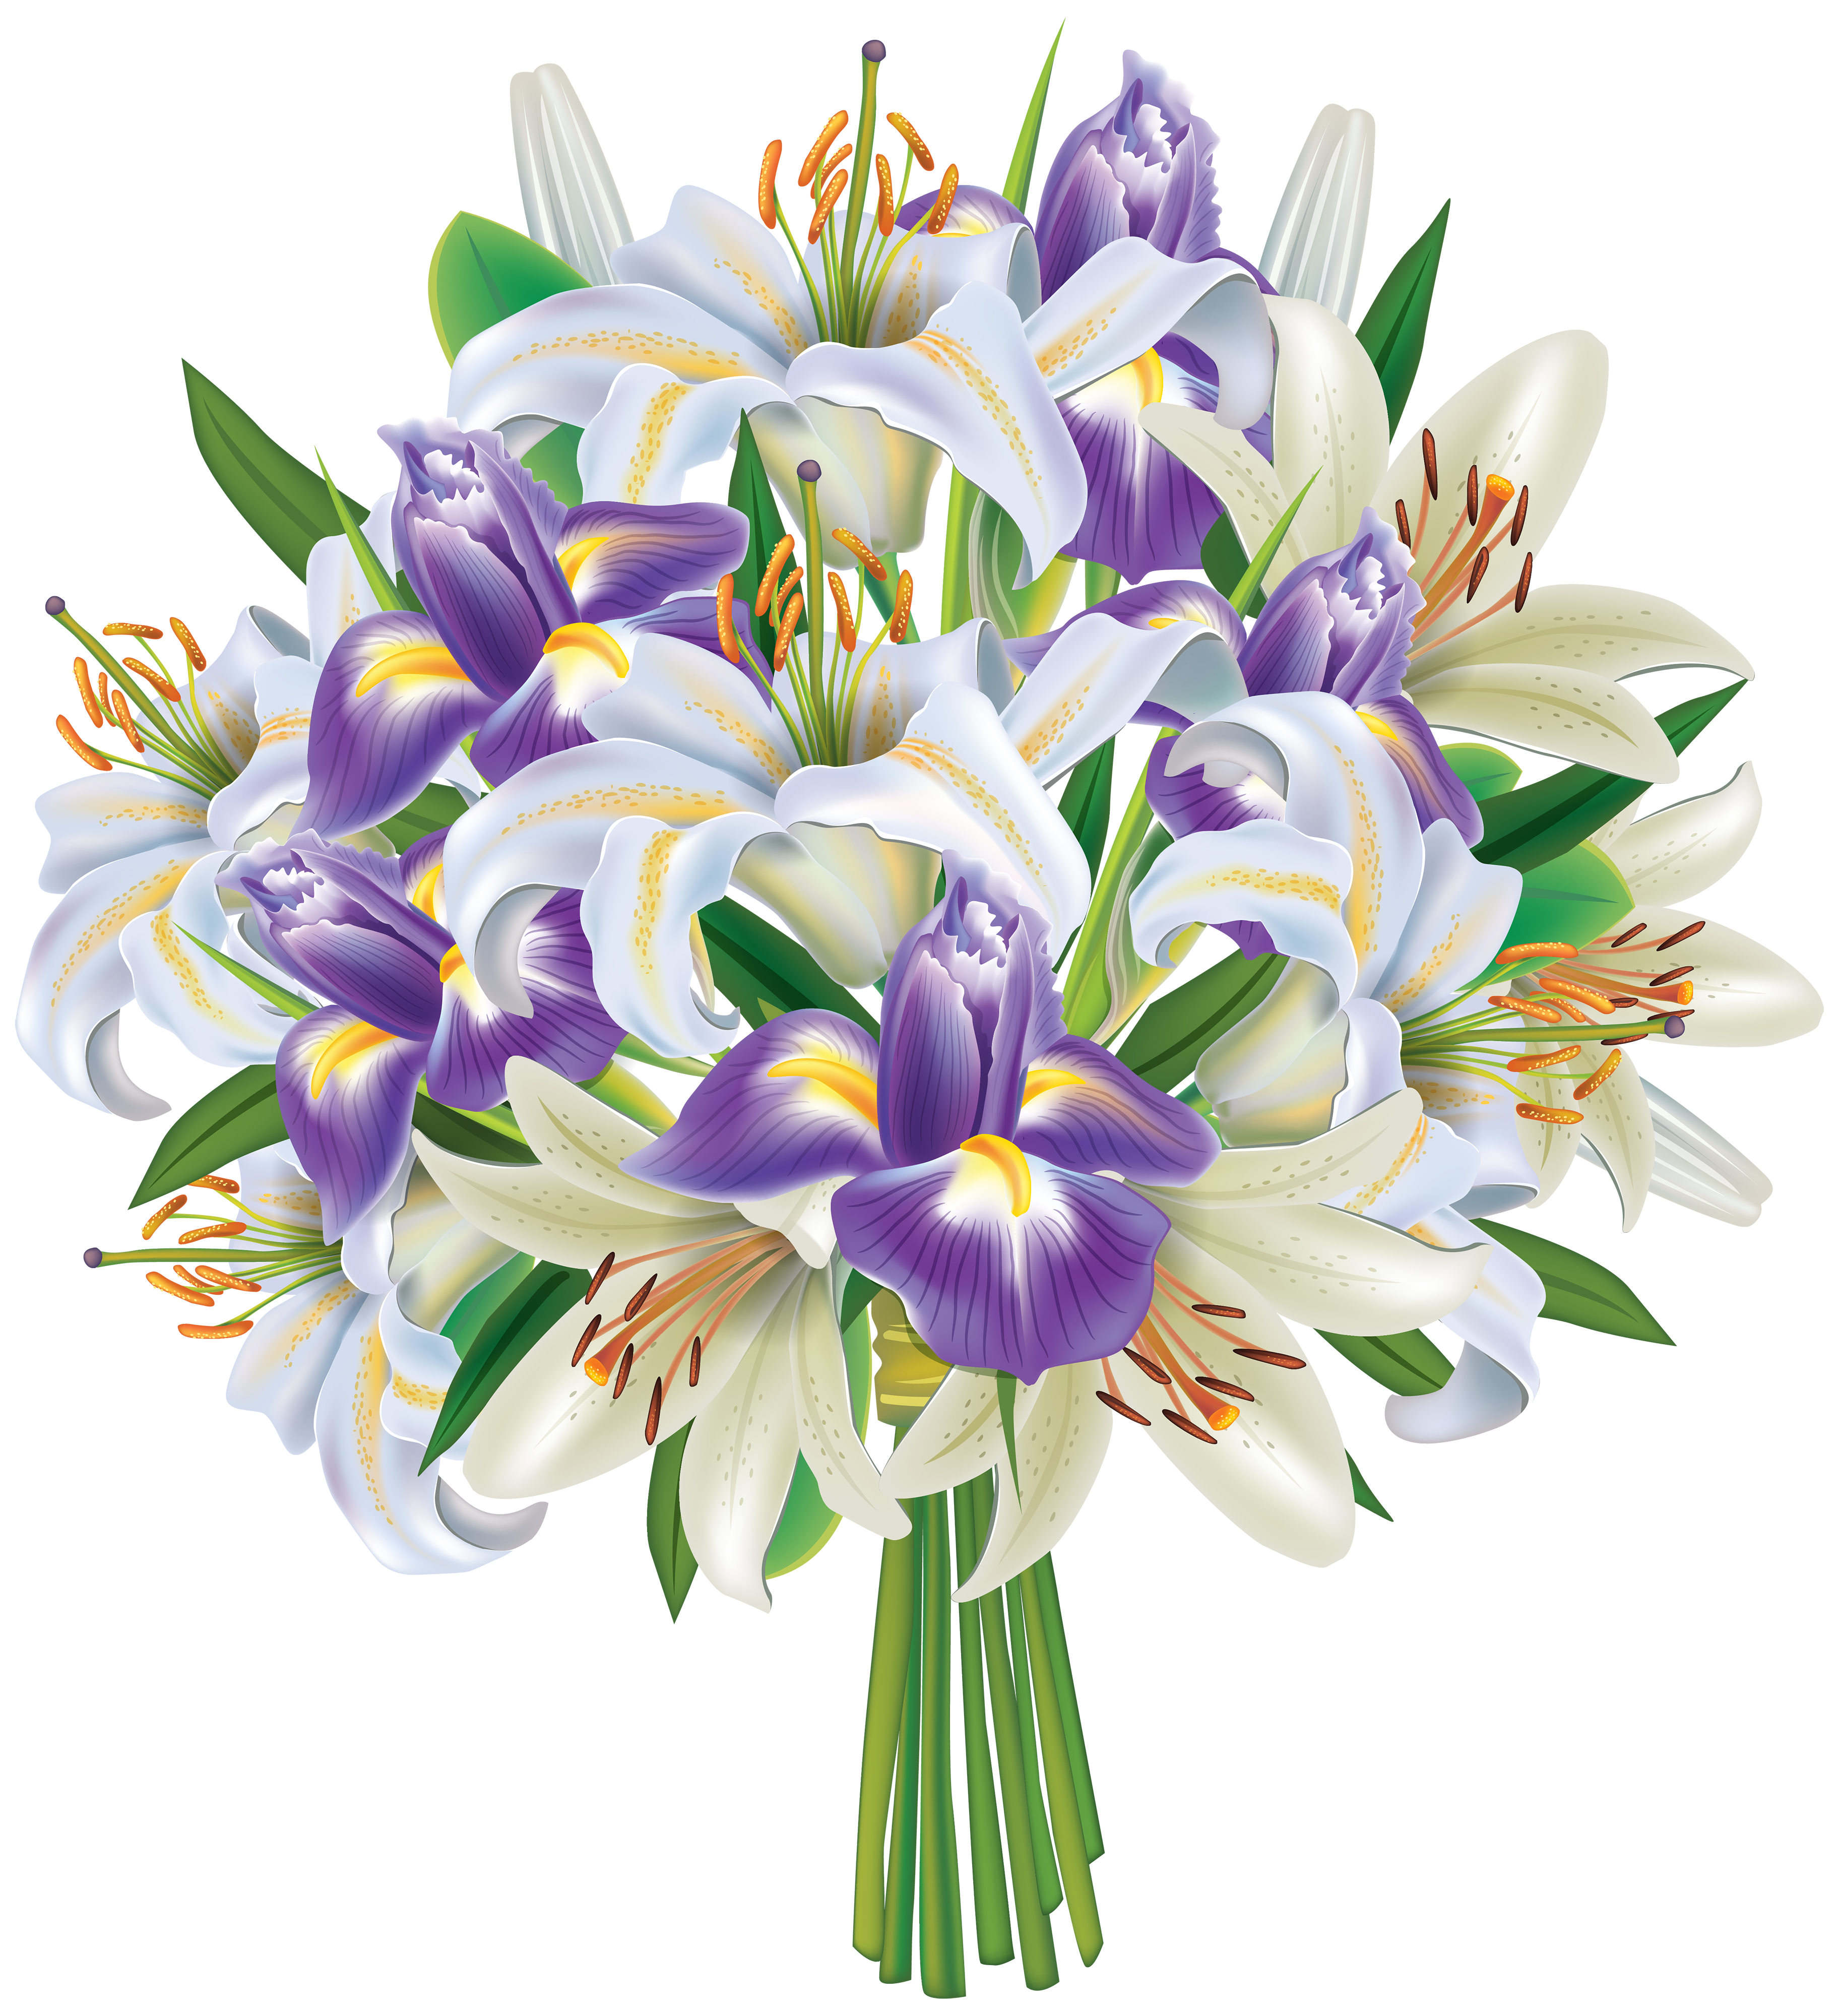 Free clipart flower arrangements clipart library library Purple Iris Flowers and Lilies Bouquet PNG Clipart Image | Gallery ... clipart library library